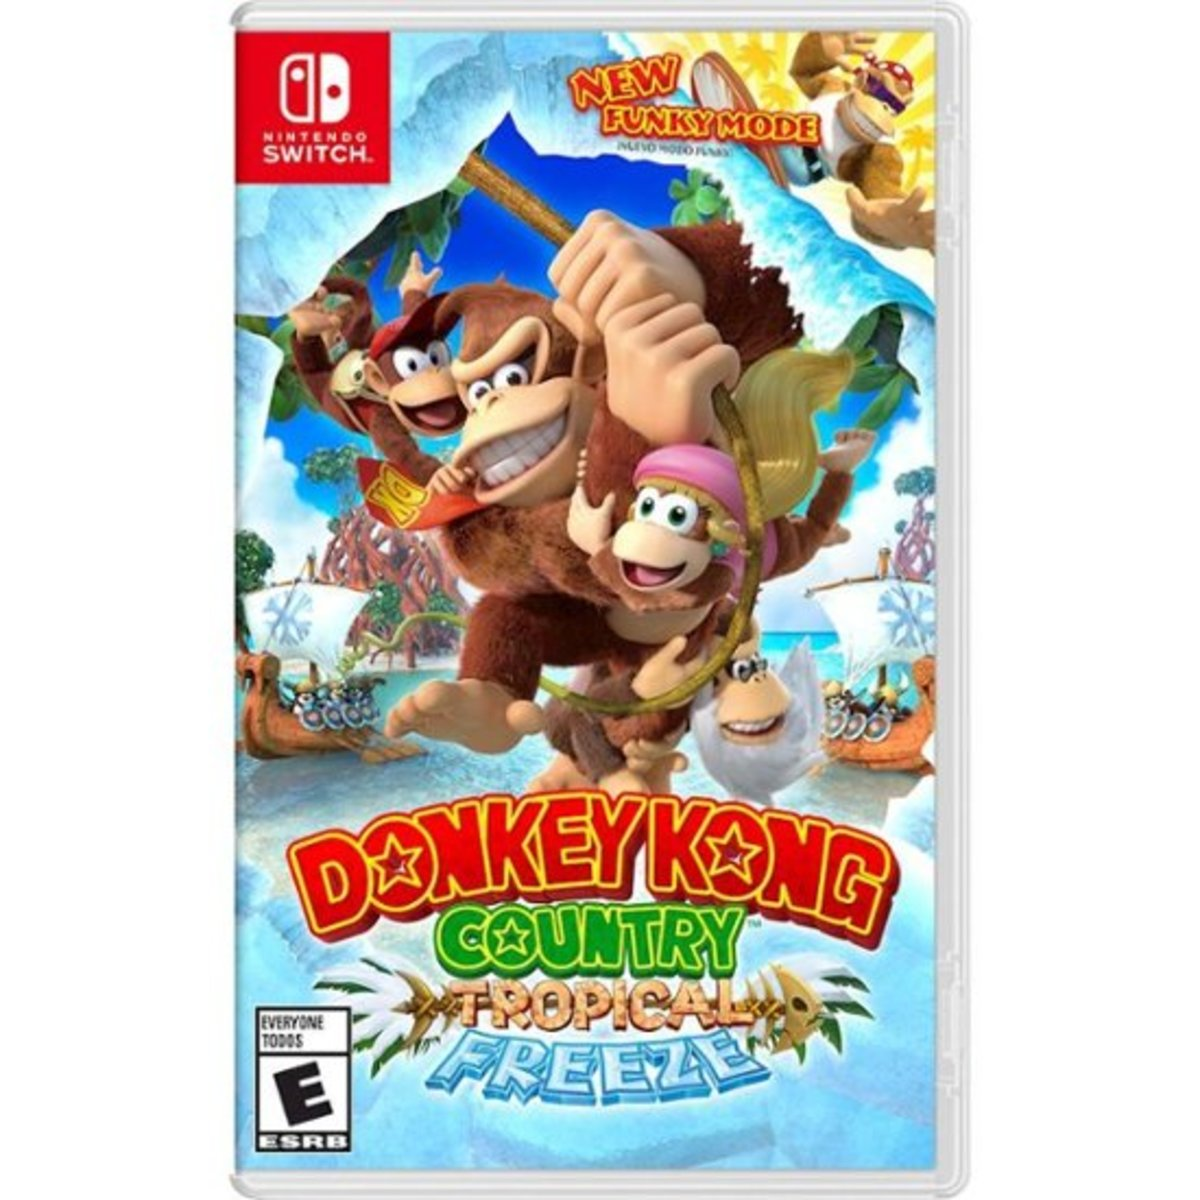 Switch Games - DONKEY KONG COUNTRY: TROPICAL FREEZE